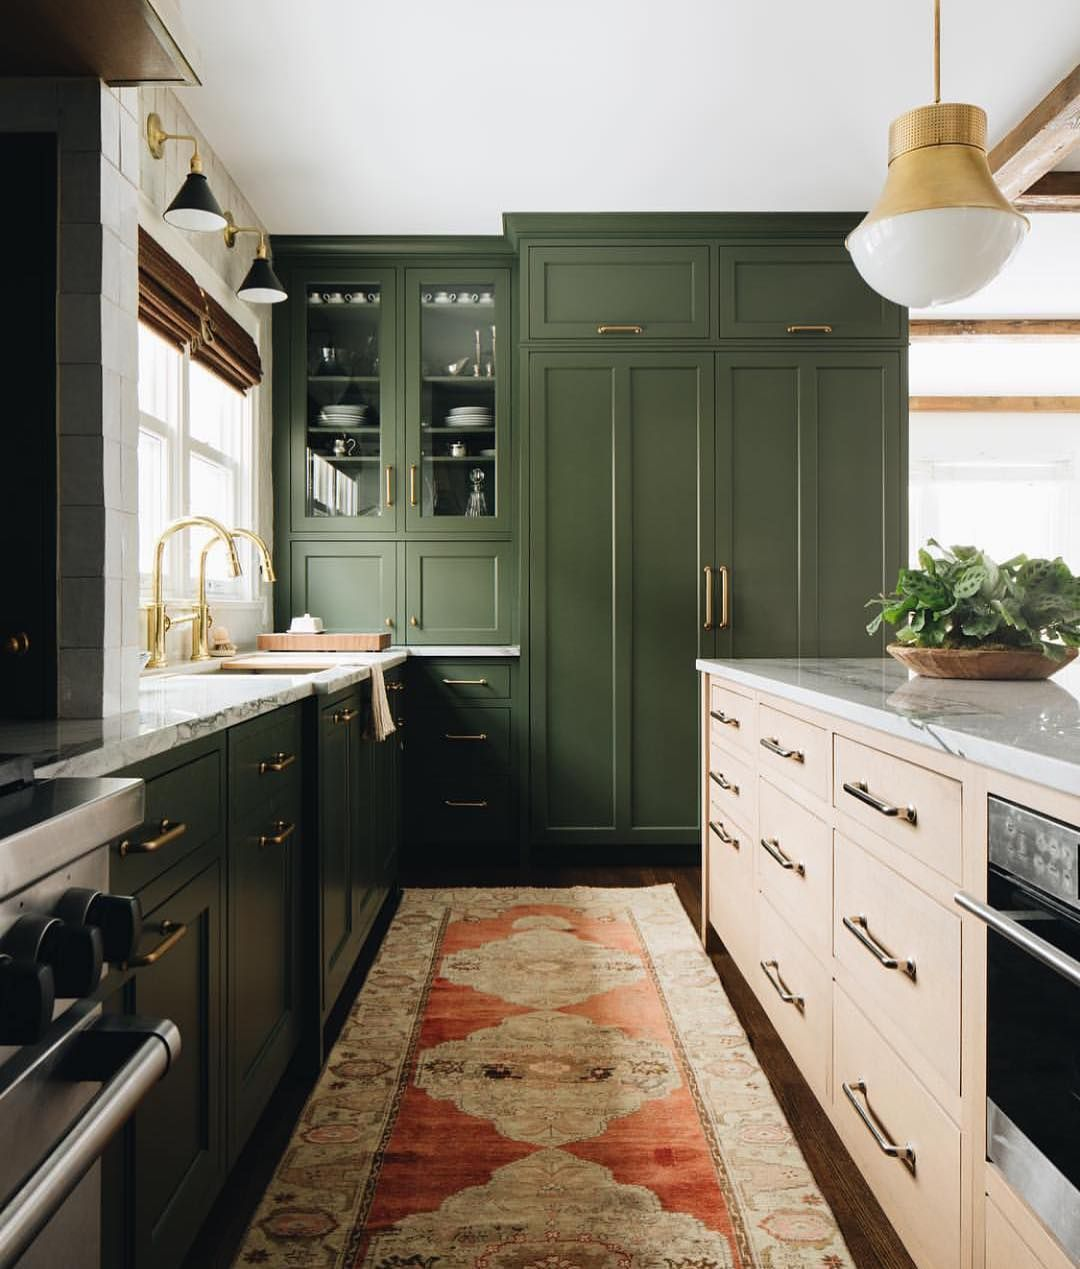 Sophia Rosenberg In Portland On Instagram Can T Stop Eyeing The Green And Blush Thing That S Green Kitchen Cabinets Kitchen Inspirations Kitchen Renovation